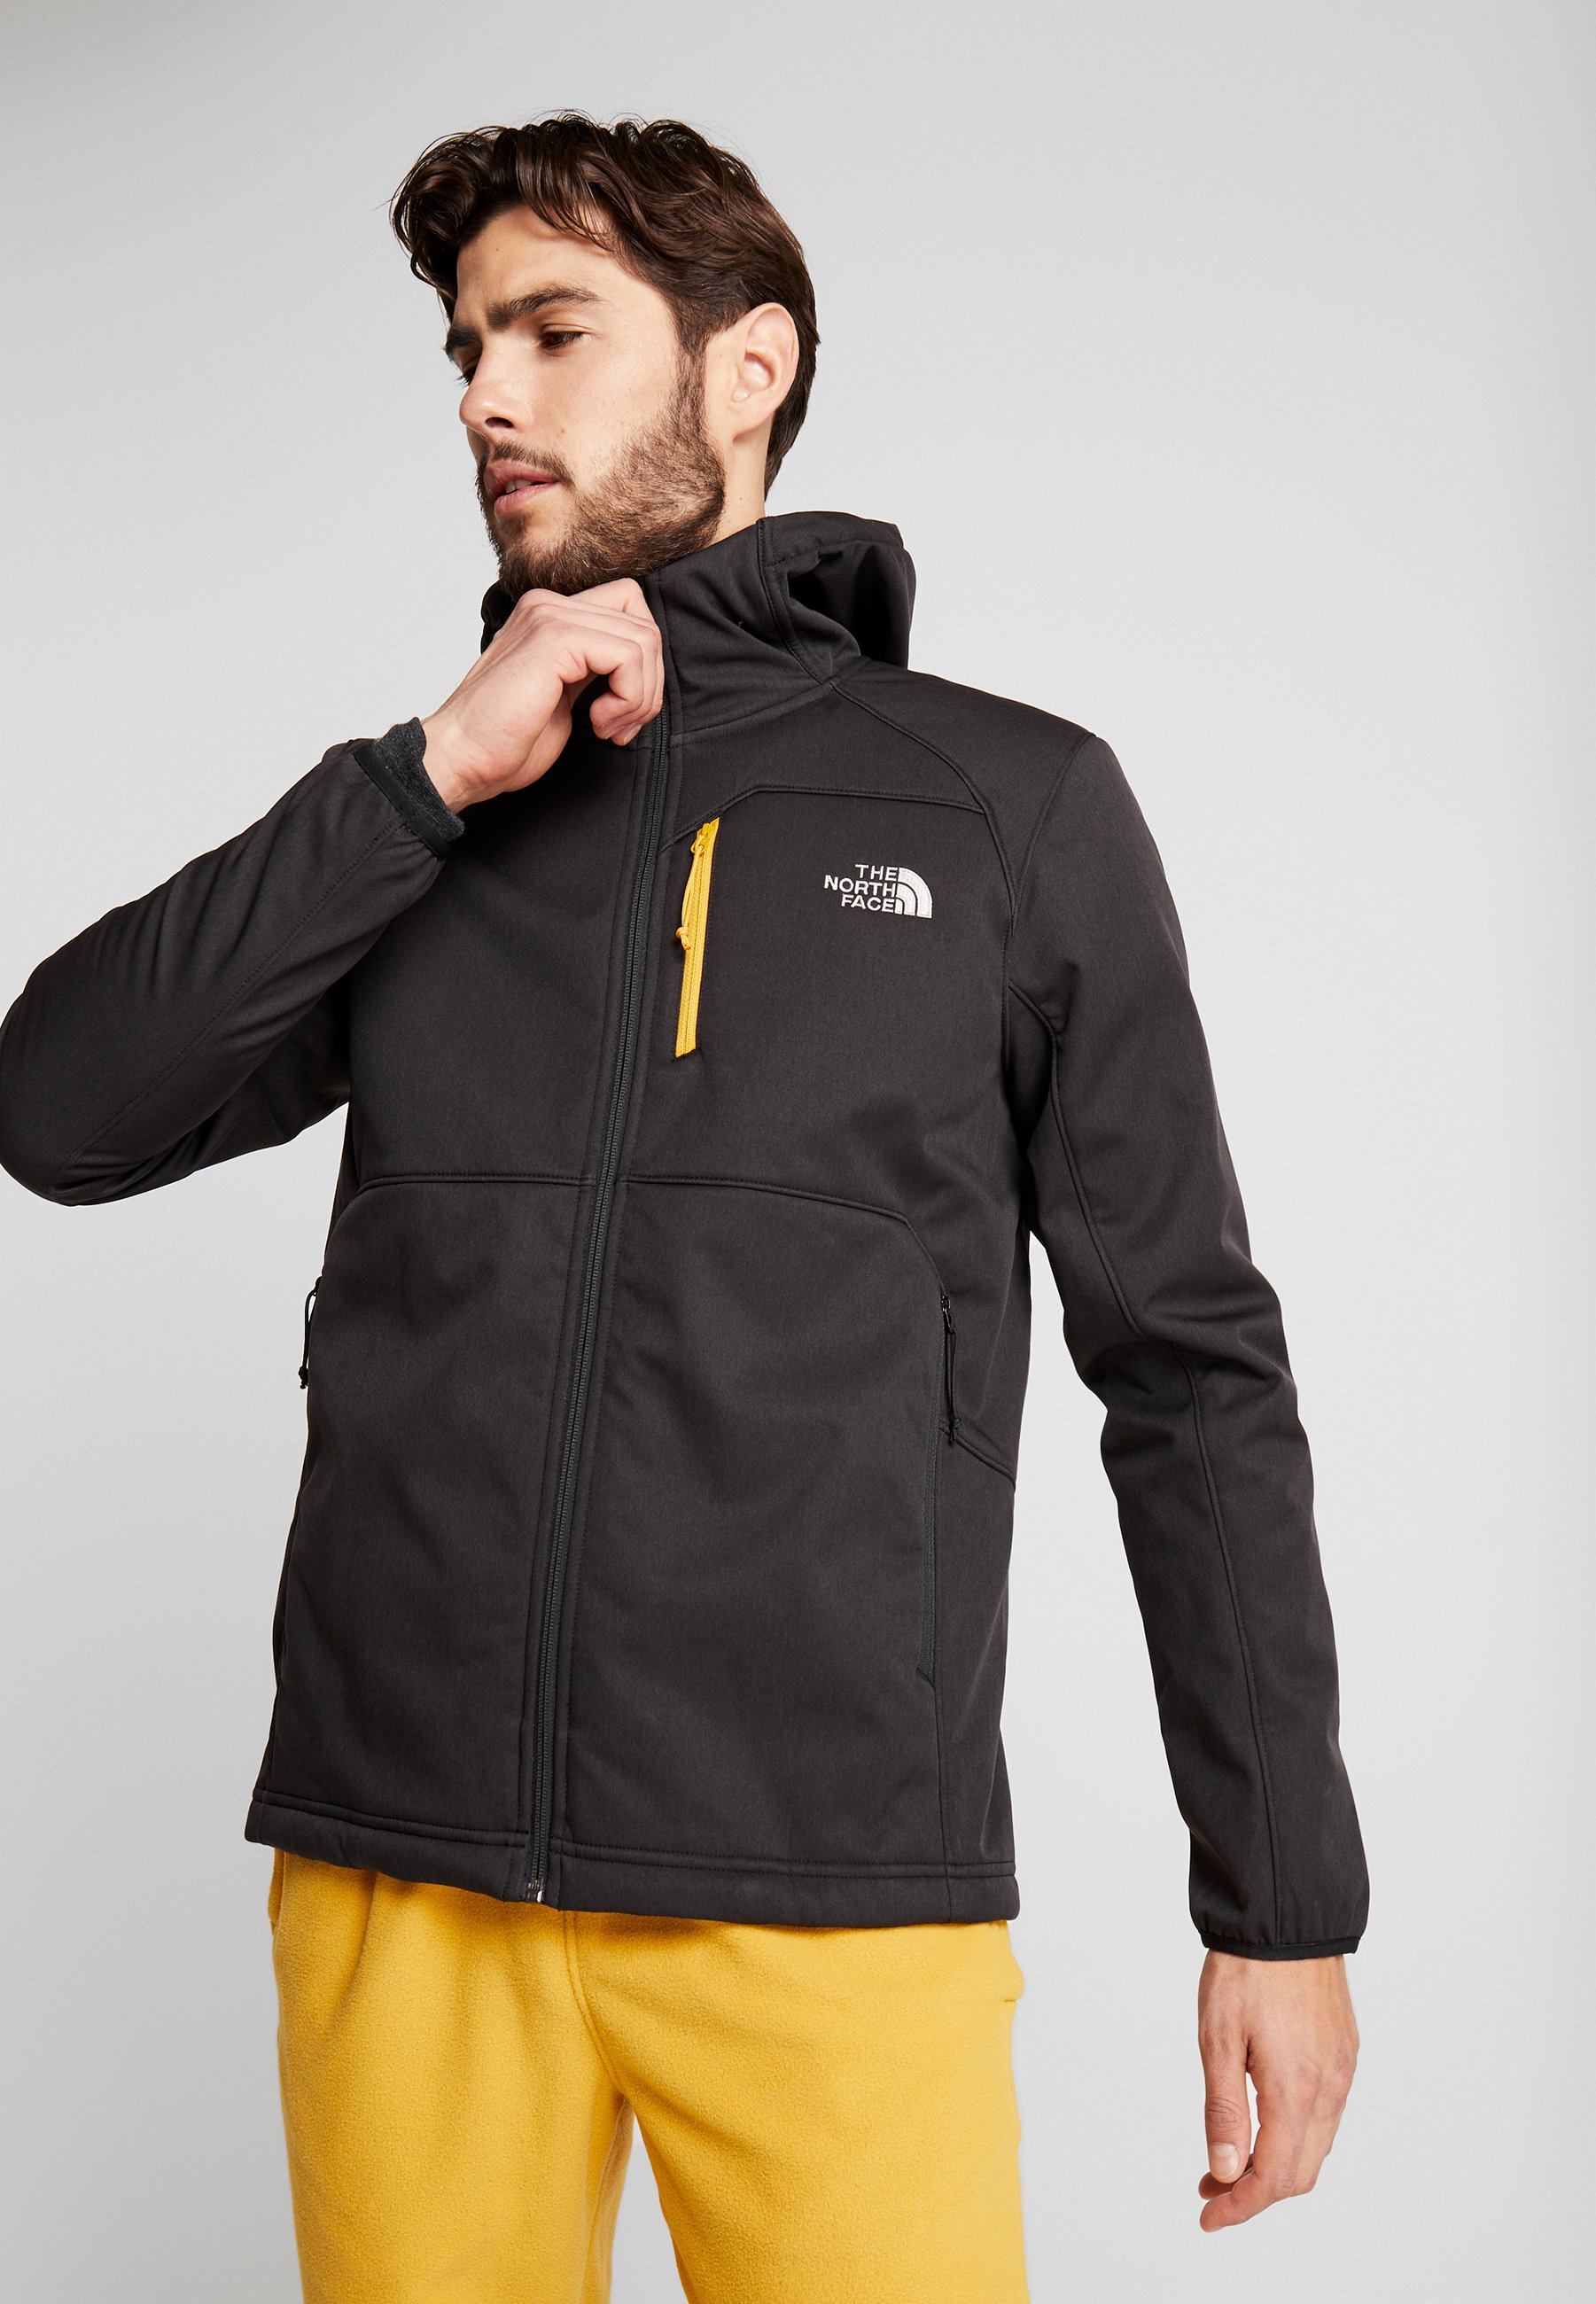 HoodedVeste Black The Face North Quest Softshell f6b7gyvIY